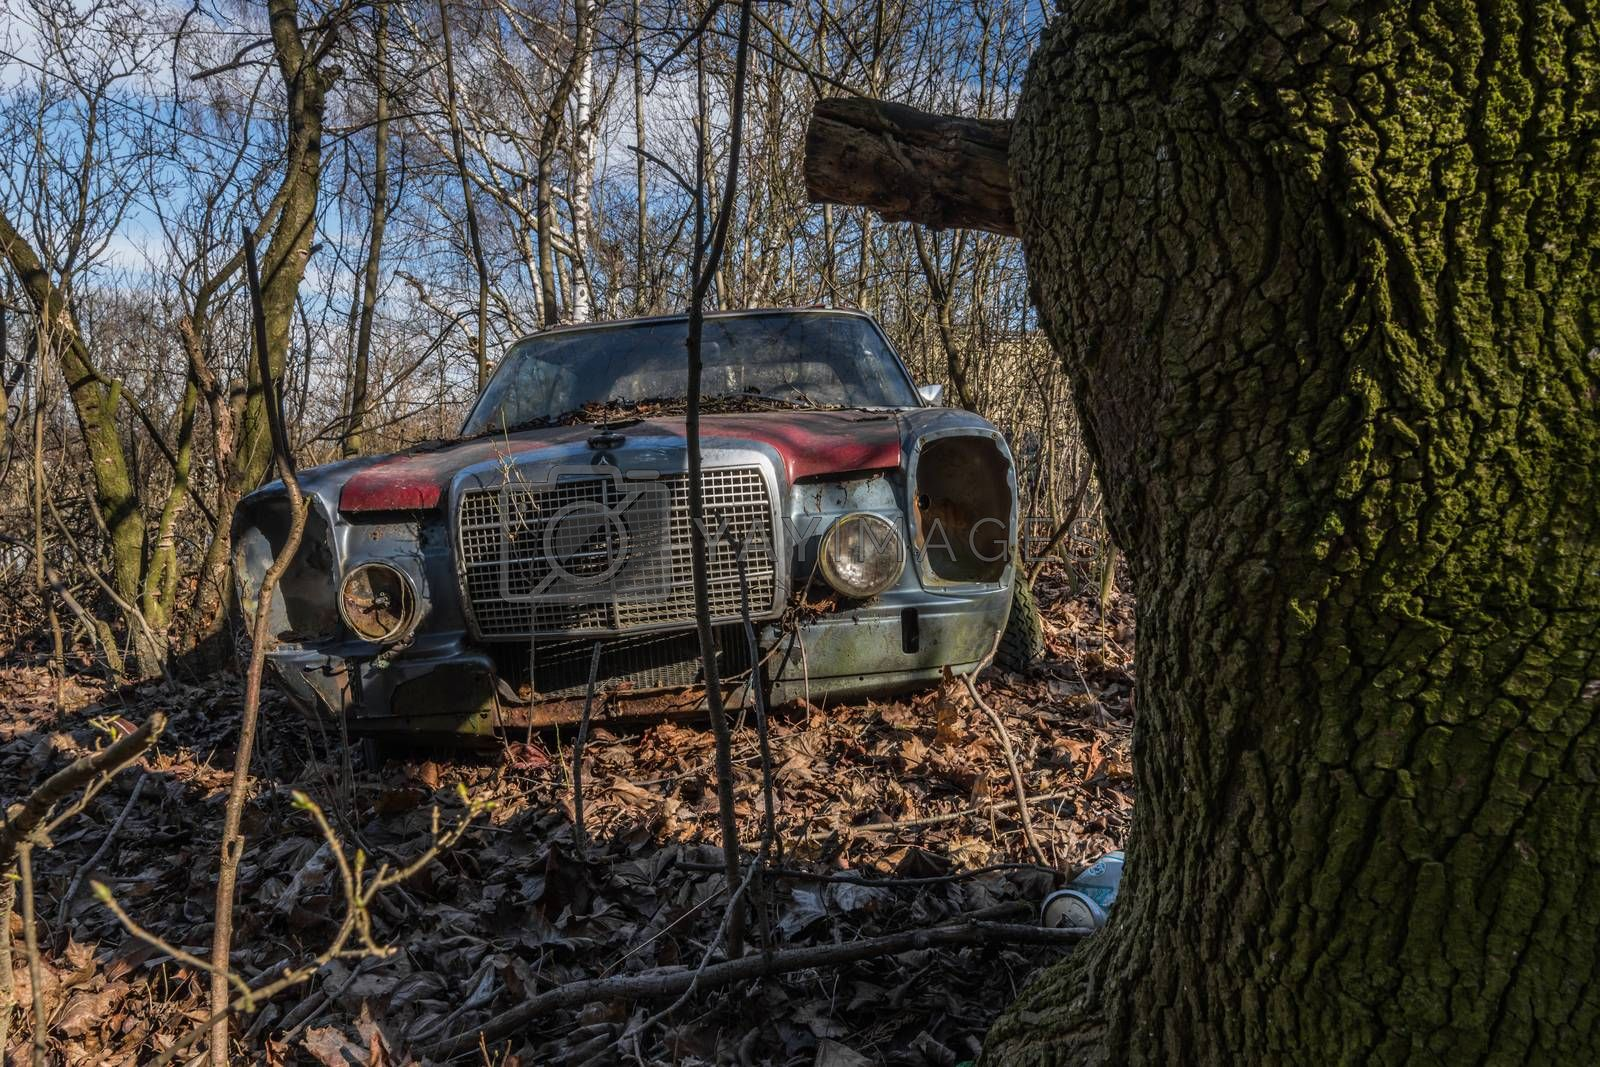 View from tree of old rusty Mercedes